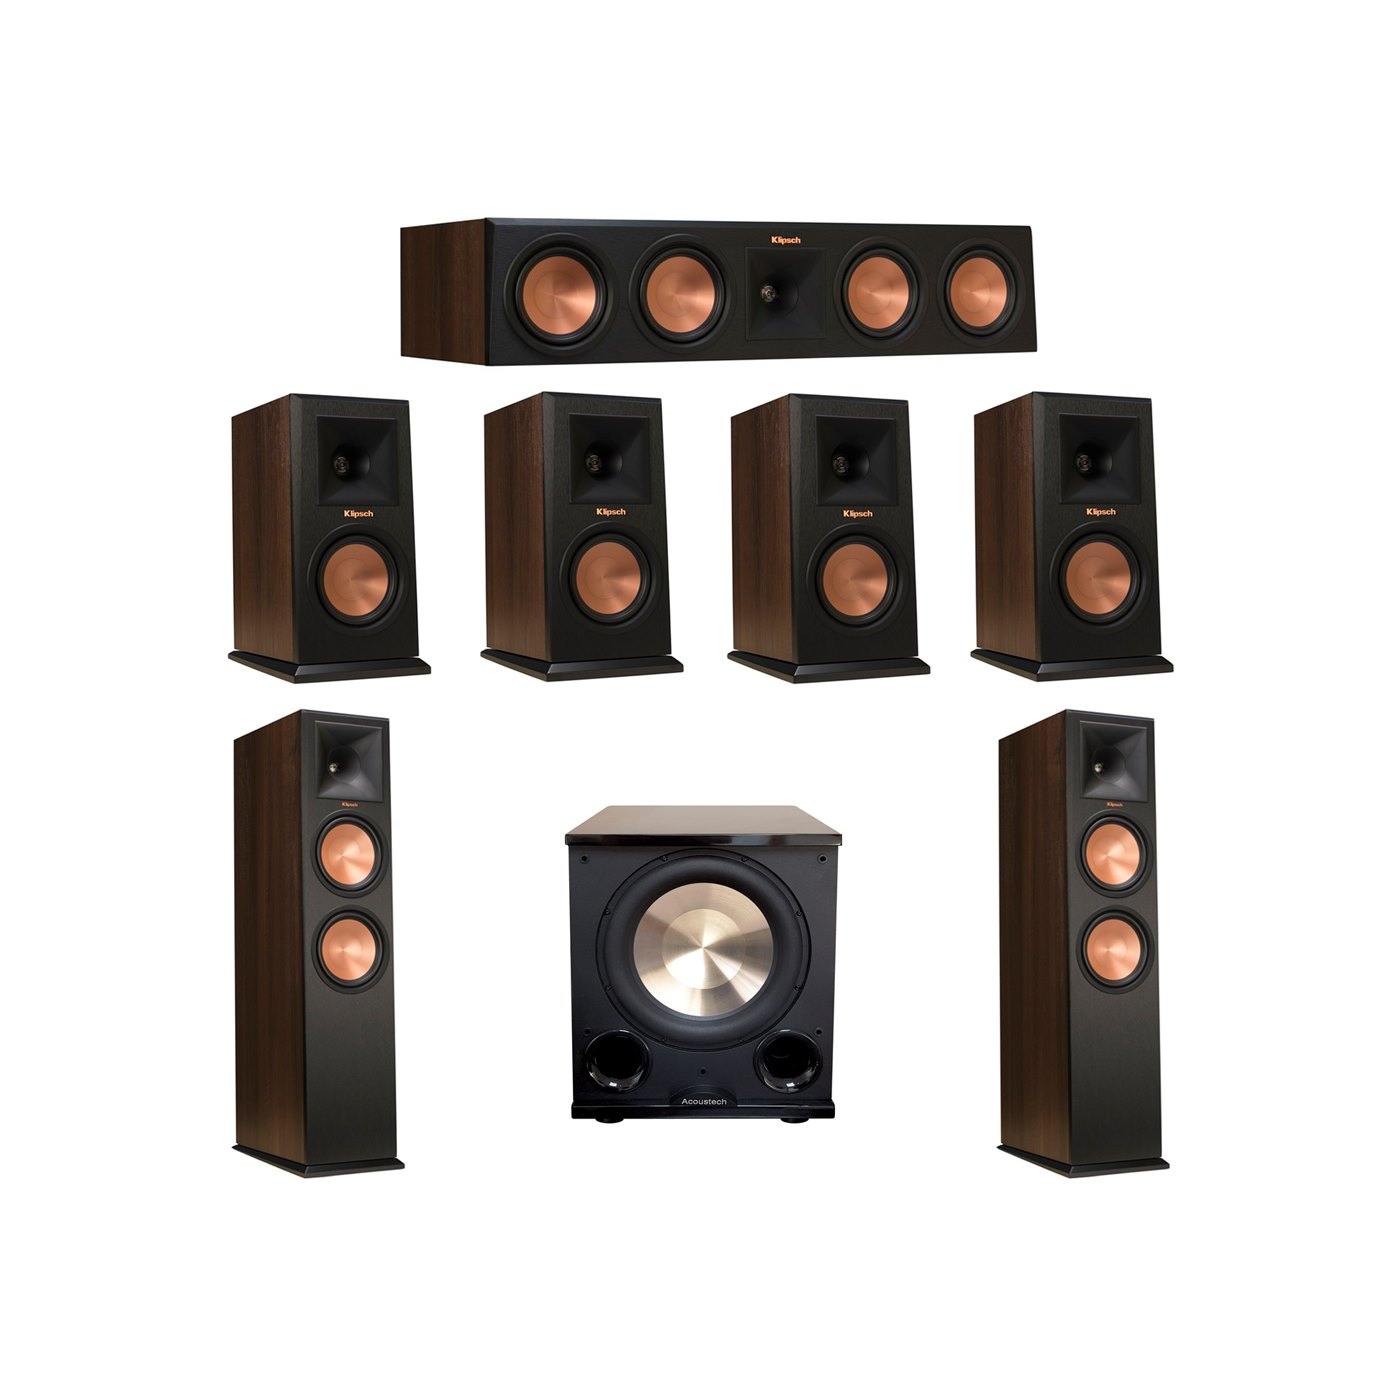 Klipsch 7.1 Walnut System with 2 RP-280F Tower Speakers, 1 RP-450C Center Speaker, 4 Klipsch RP-150M Bookshelf Speakers, 1 BIC/Acoustech Platinum Series PL-200 II Subwoofer